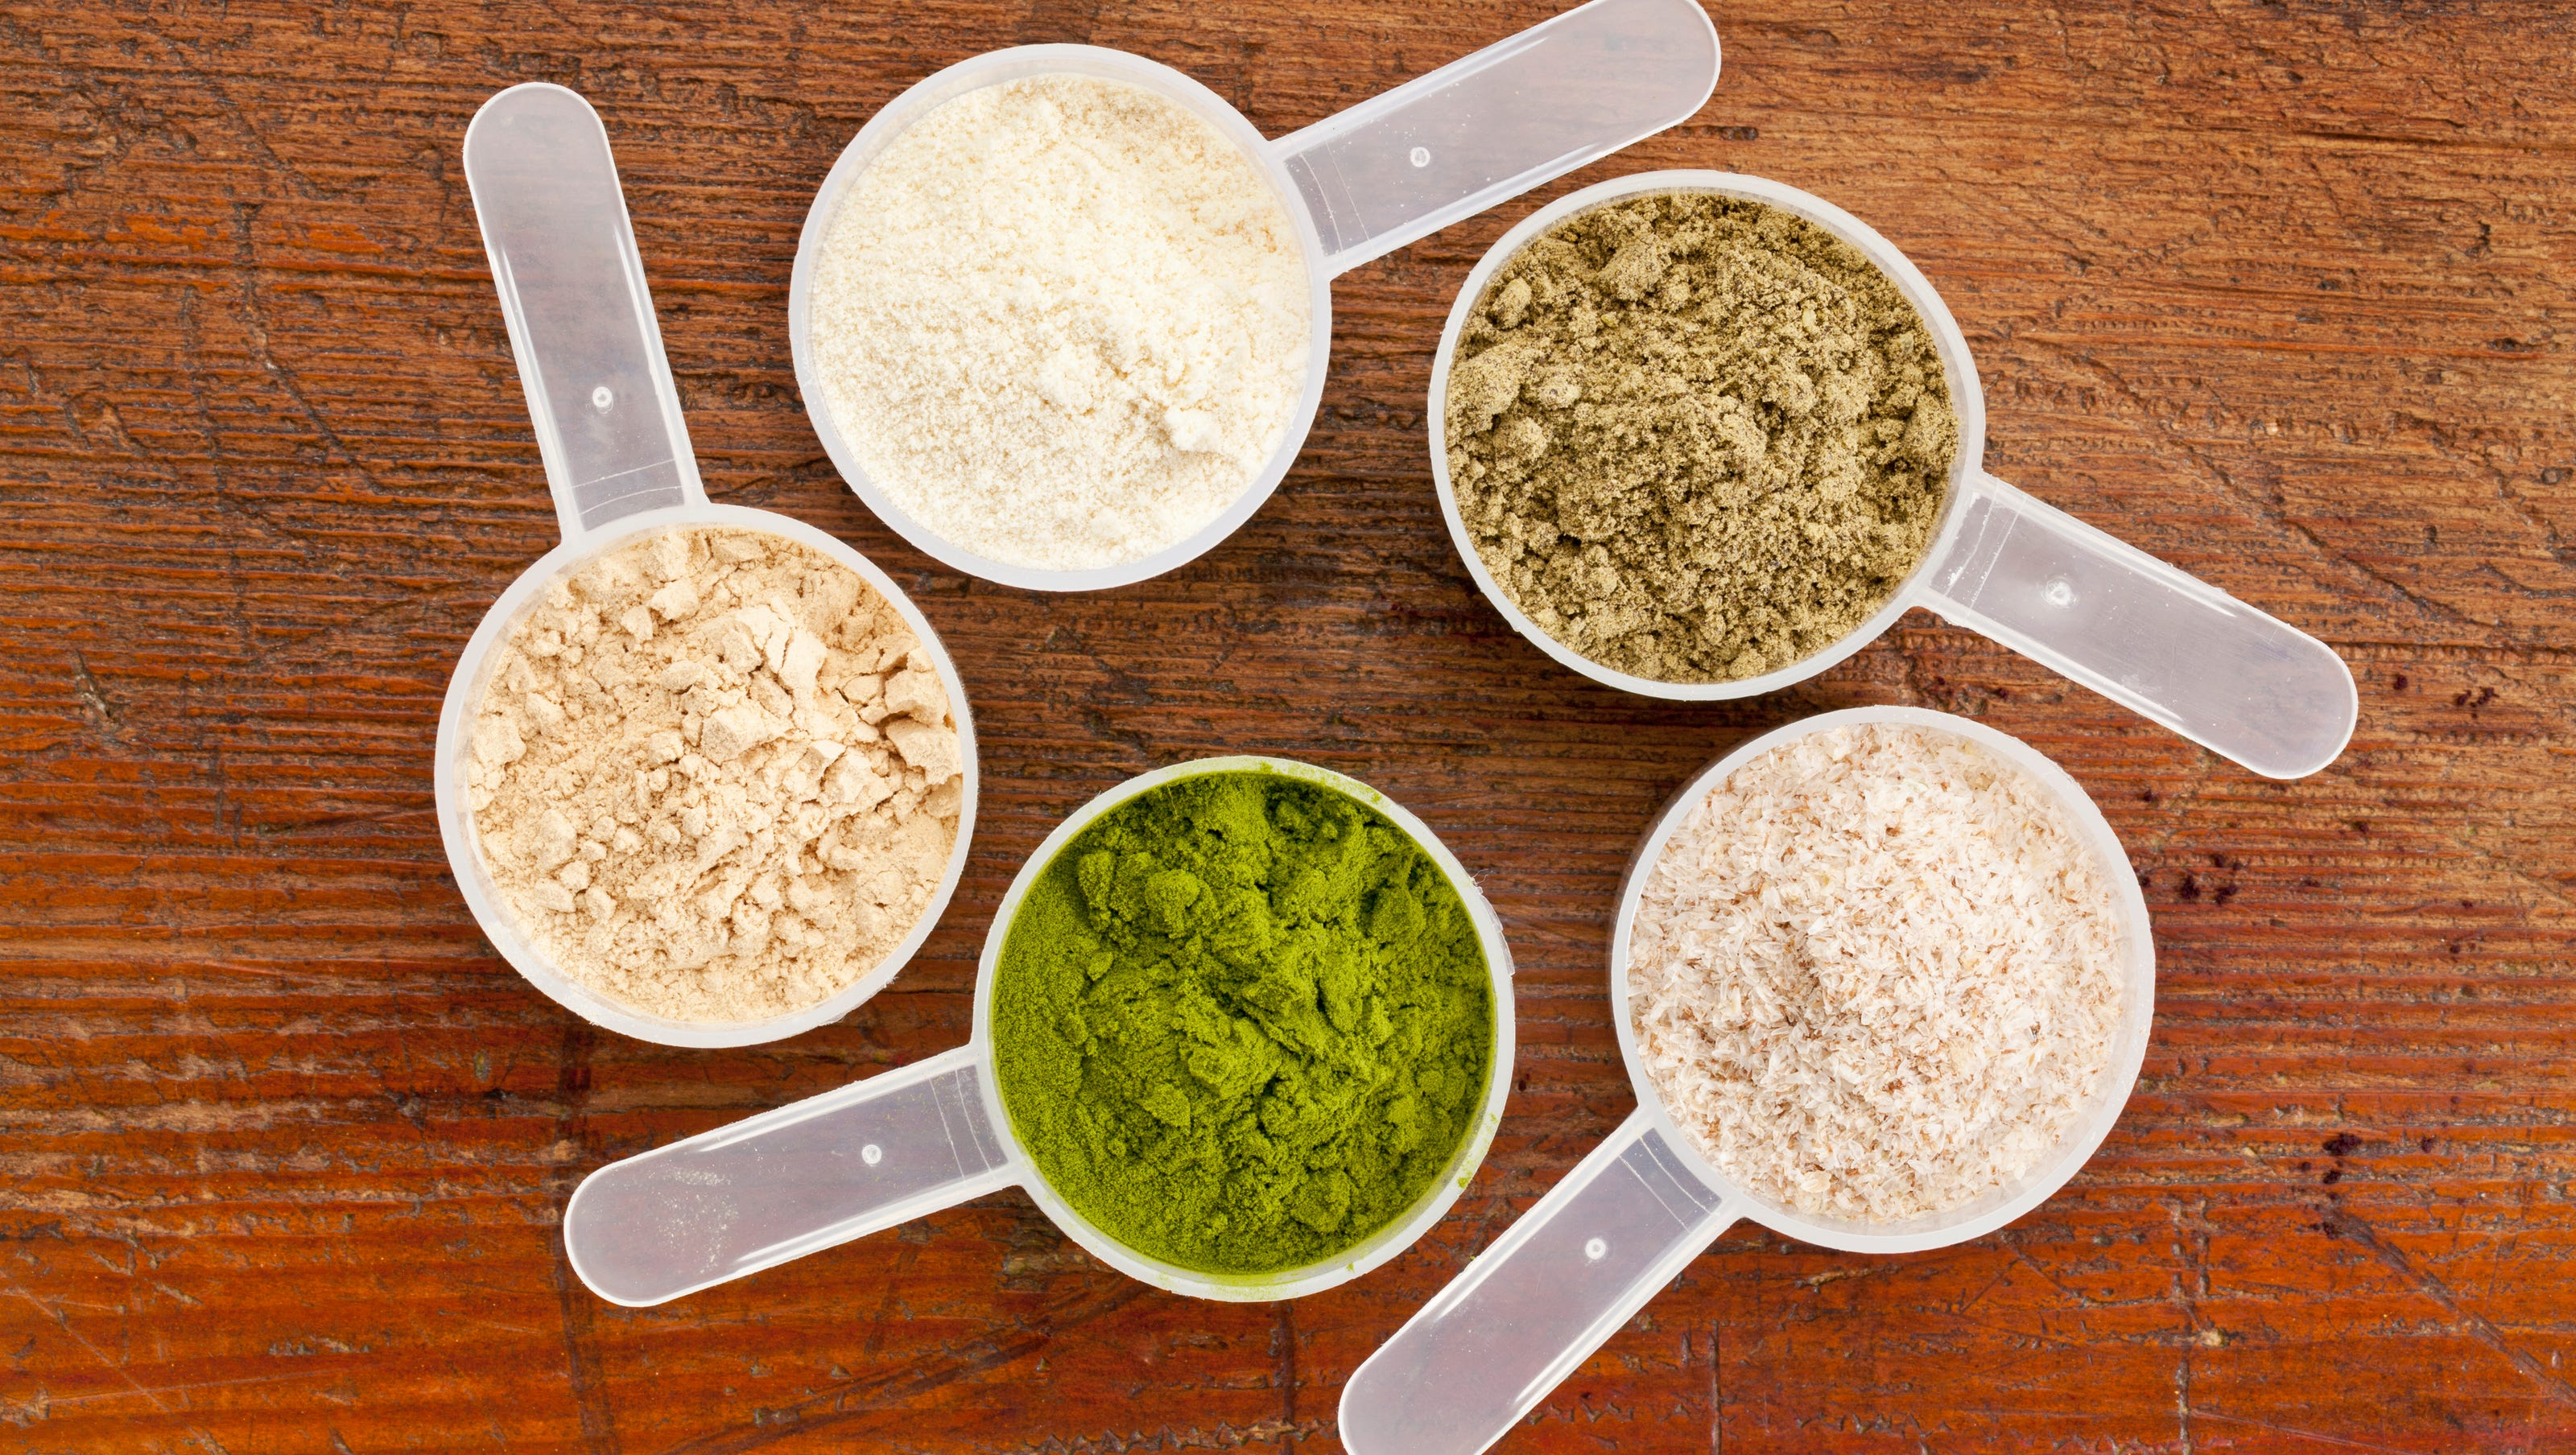 Which protein powder should I use? - INSIDER